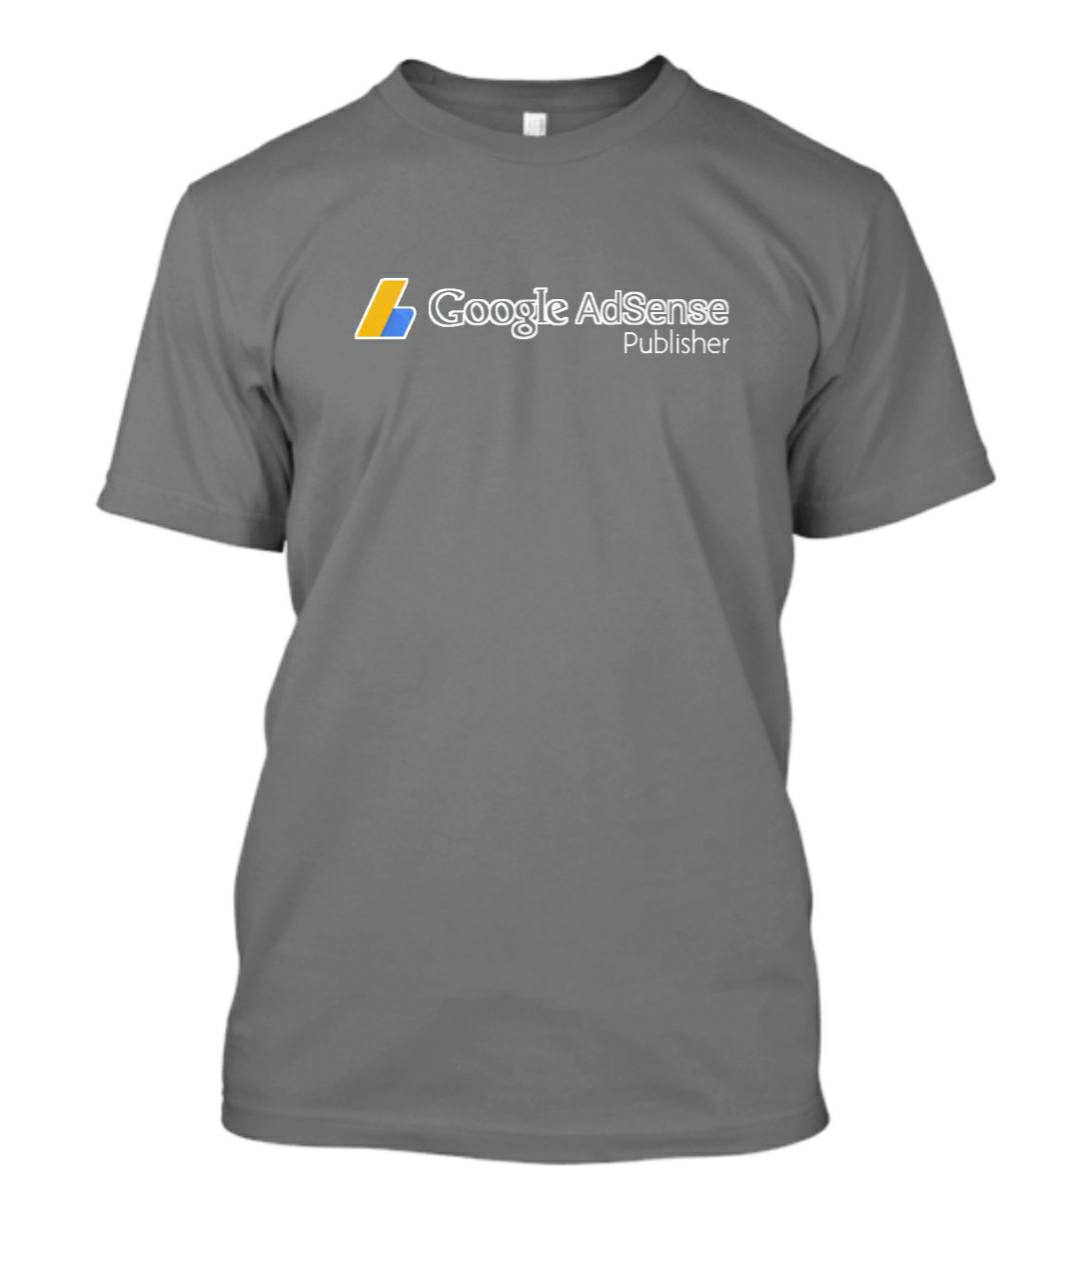 Kaos Custom Google Adsense Publisher